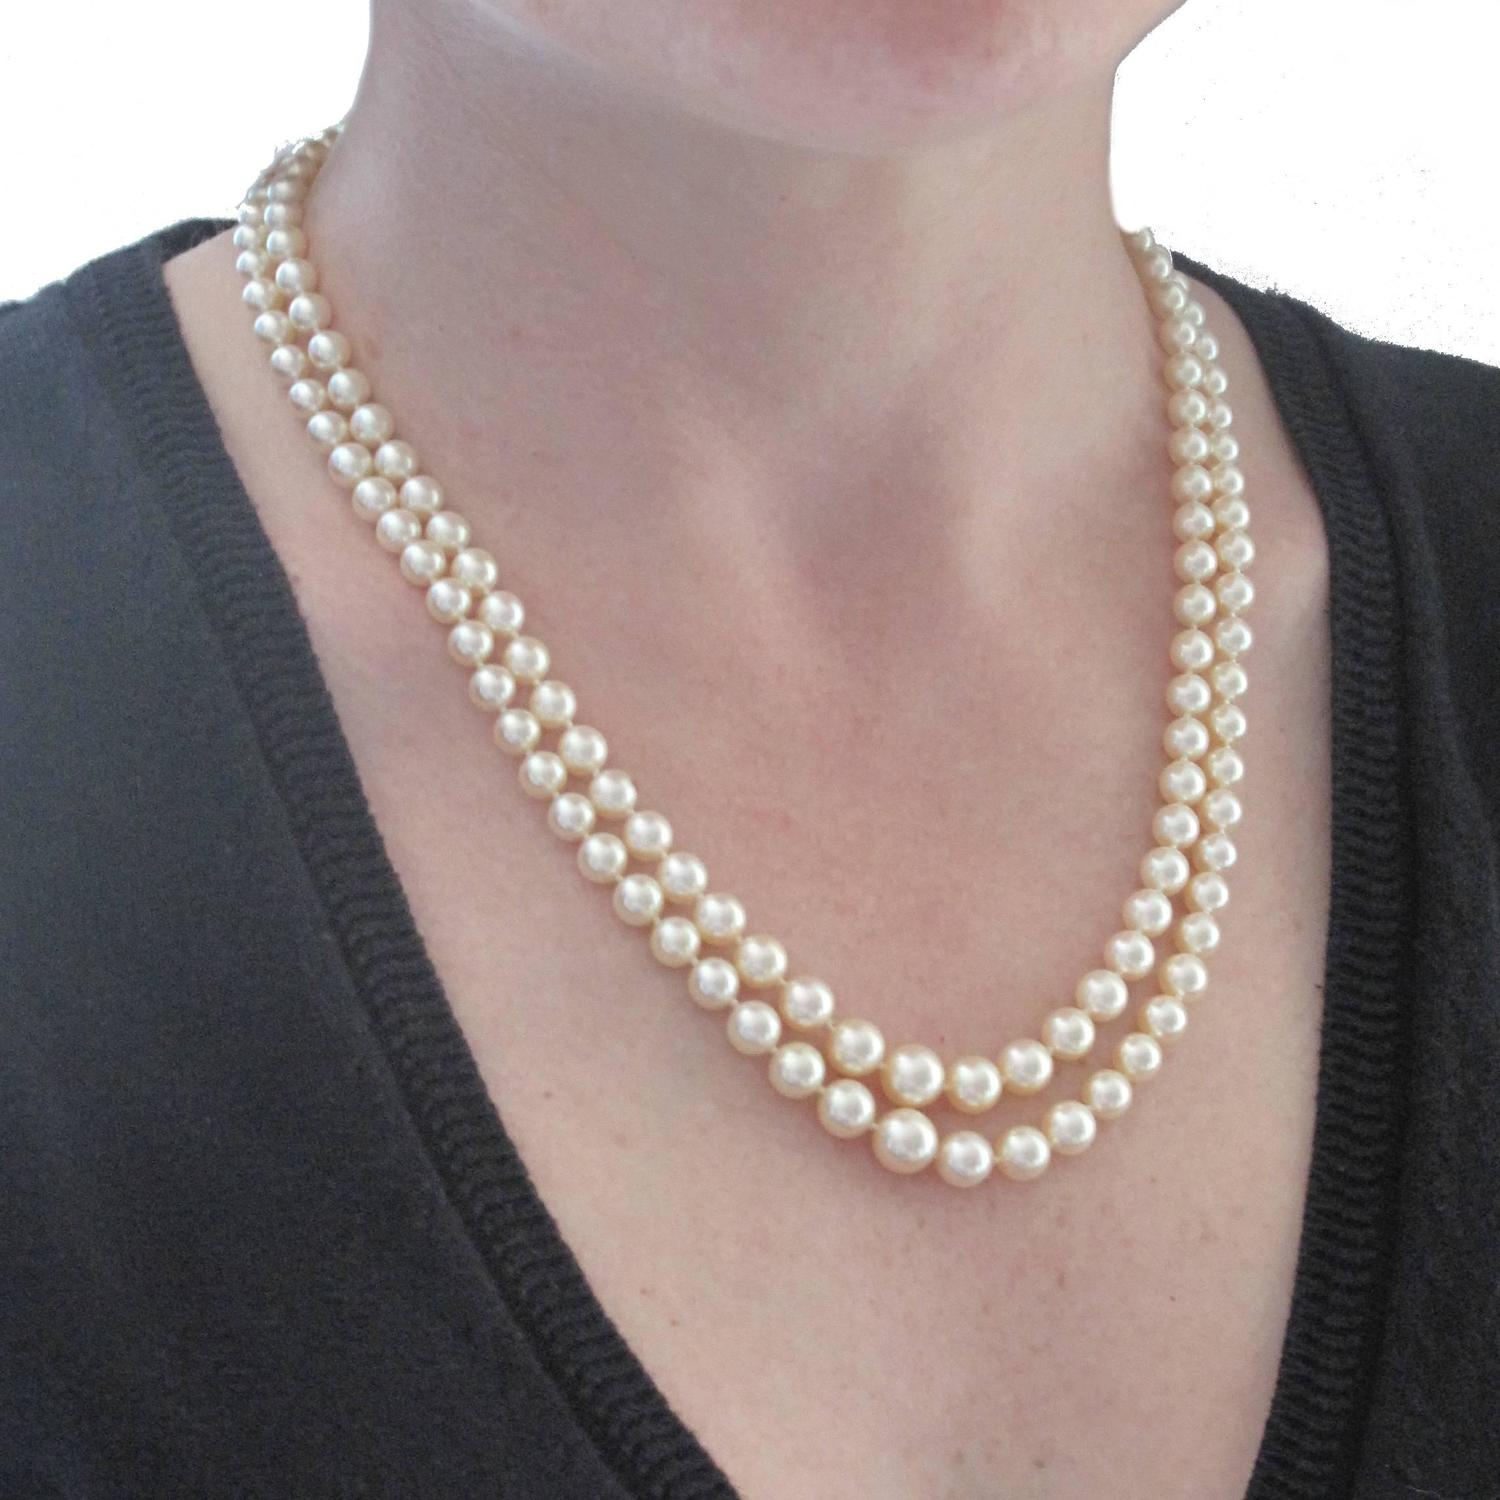 1950s Double Strand Japanese Cultured Pearl Necklace At